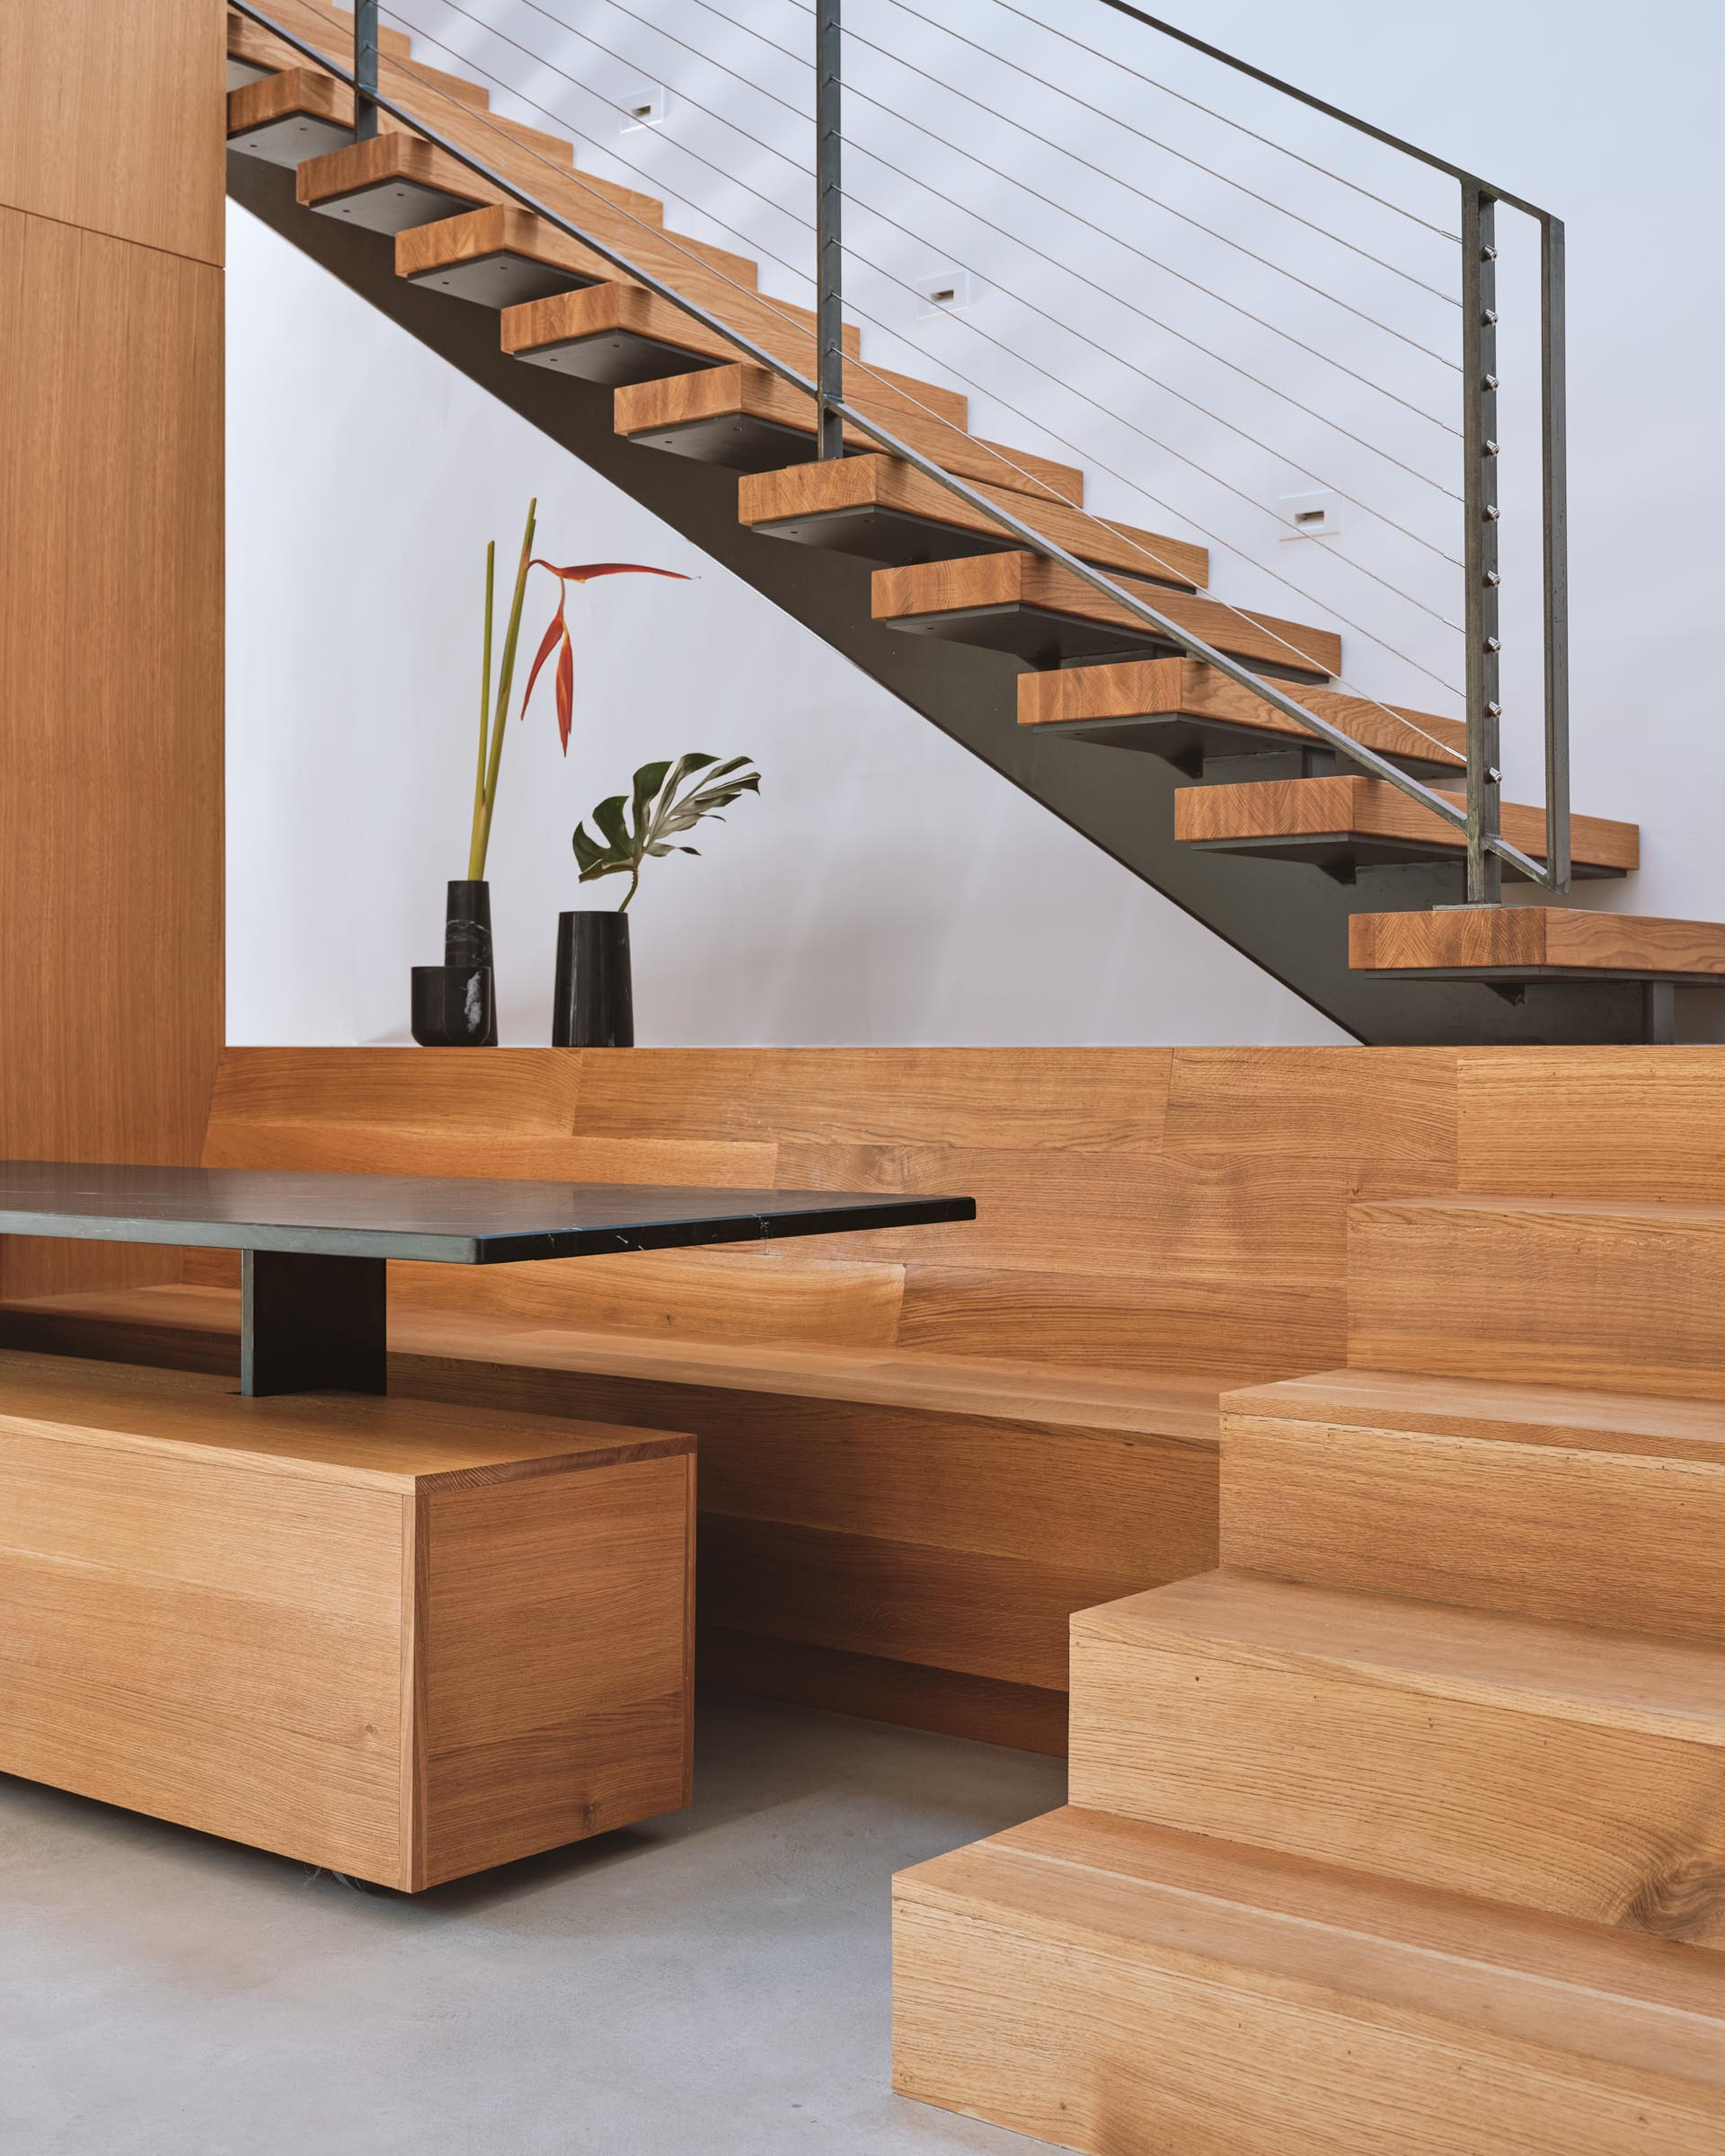 A modern built in dining area with benches and a dark table top.